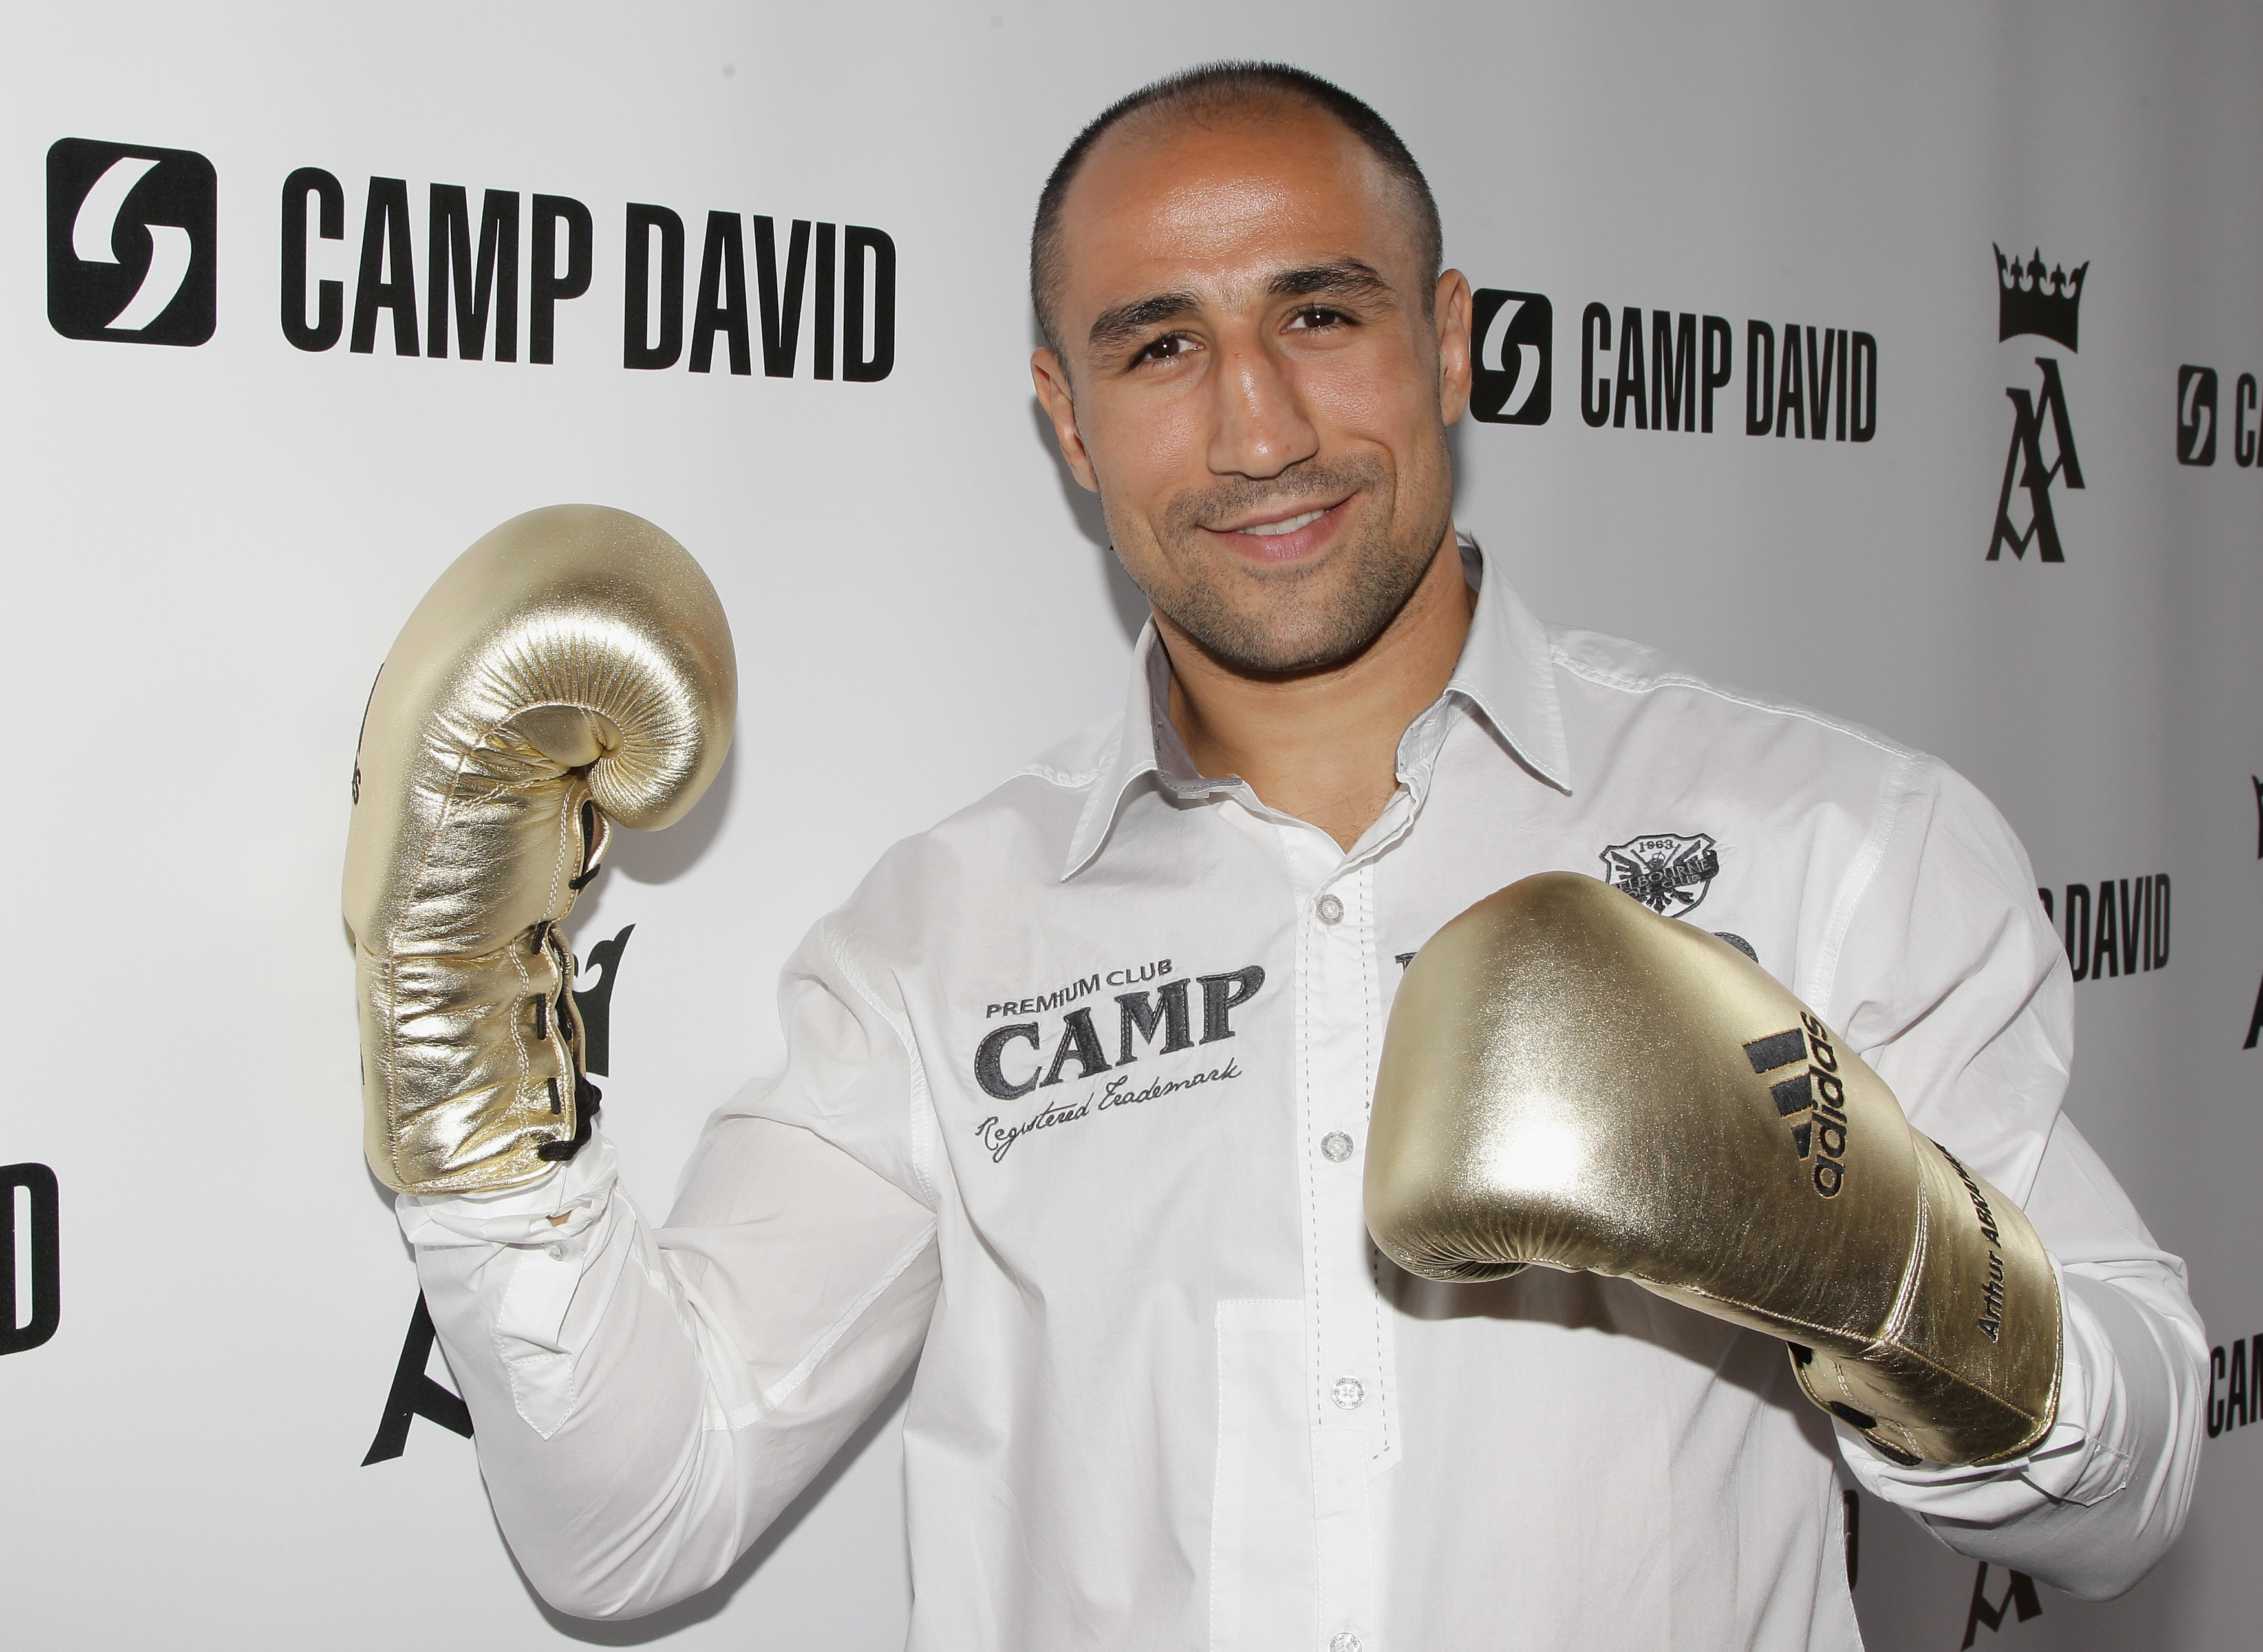 BERLIN - SEPTEMBER 16:  Boxer Arthur Abraham poses during a press conference on September 16, 2010 in Berlin, Germany. Abraham signed a co-operation with German retail clothes company Camp David.  (Photo by Andreas Rentz/Getty Images)